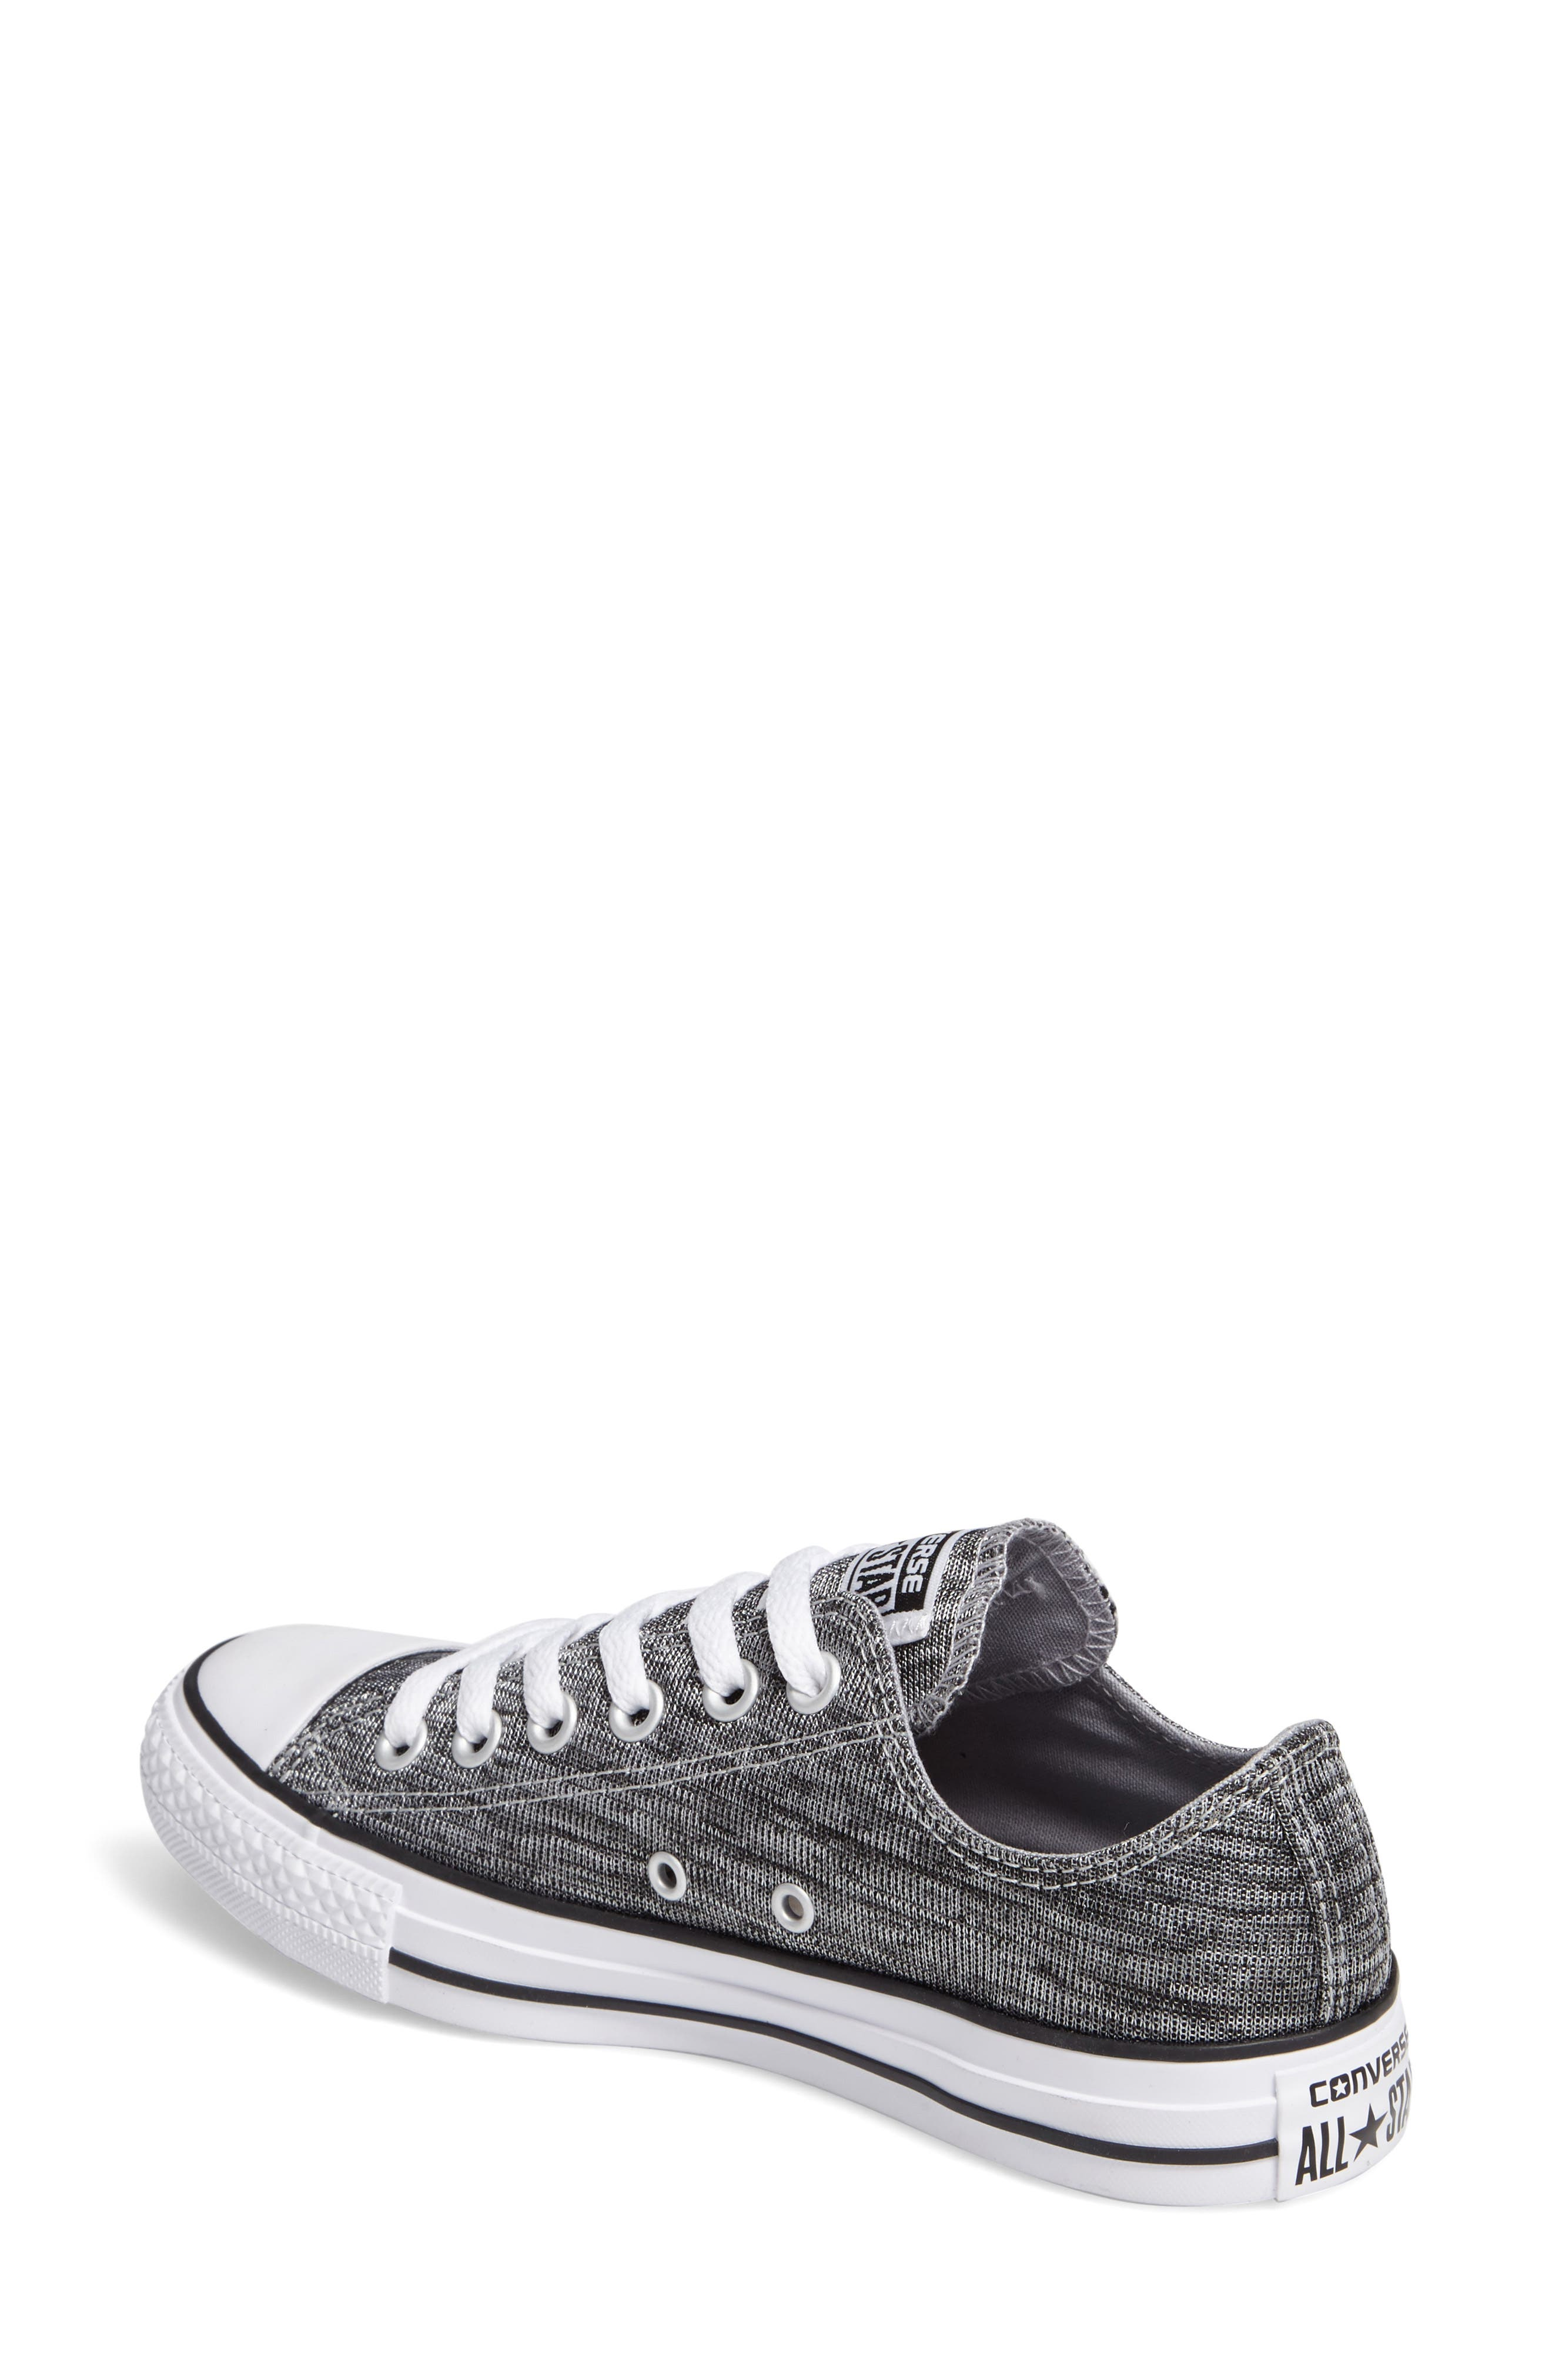 Alternate Image 2  - Converse Chuck Taylor® All Star® Knit Low Top Sneaker (Women)